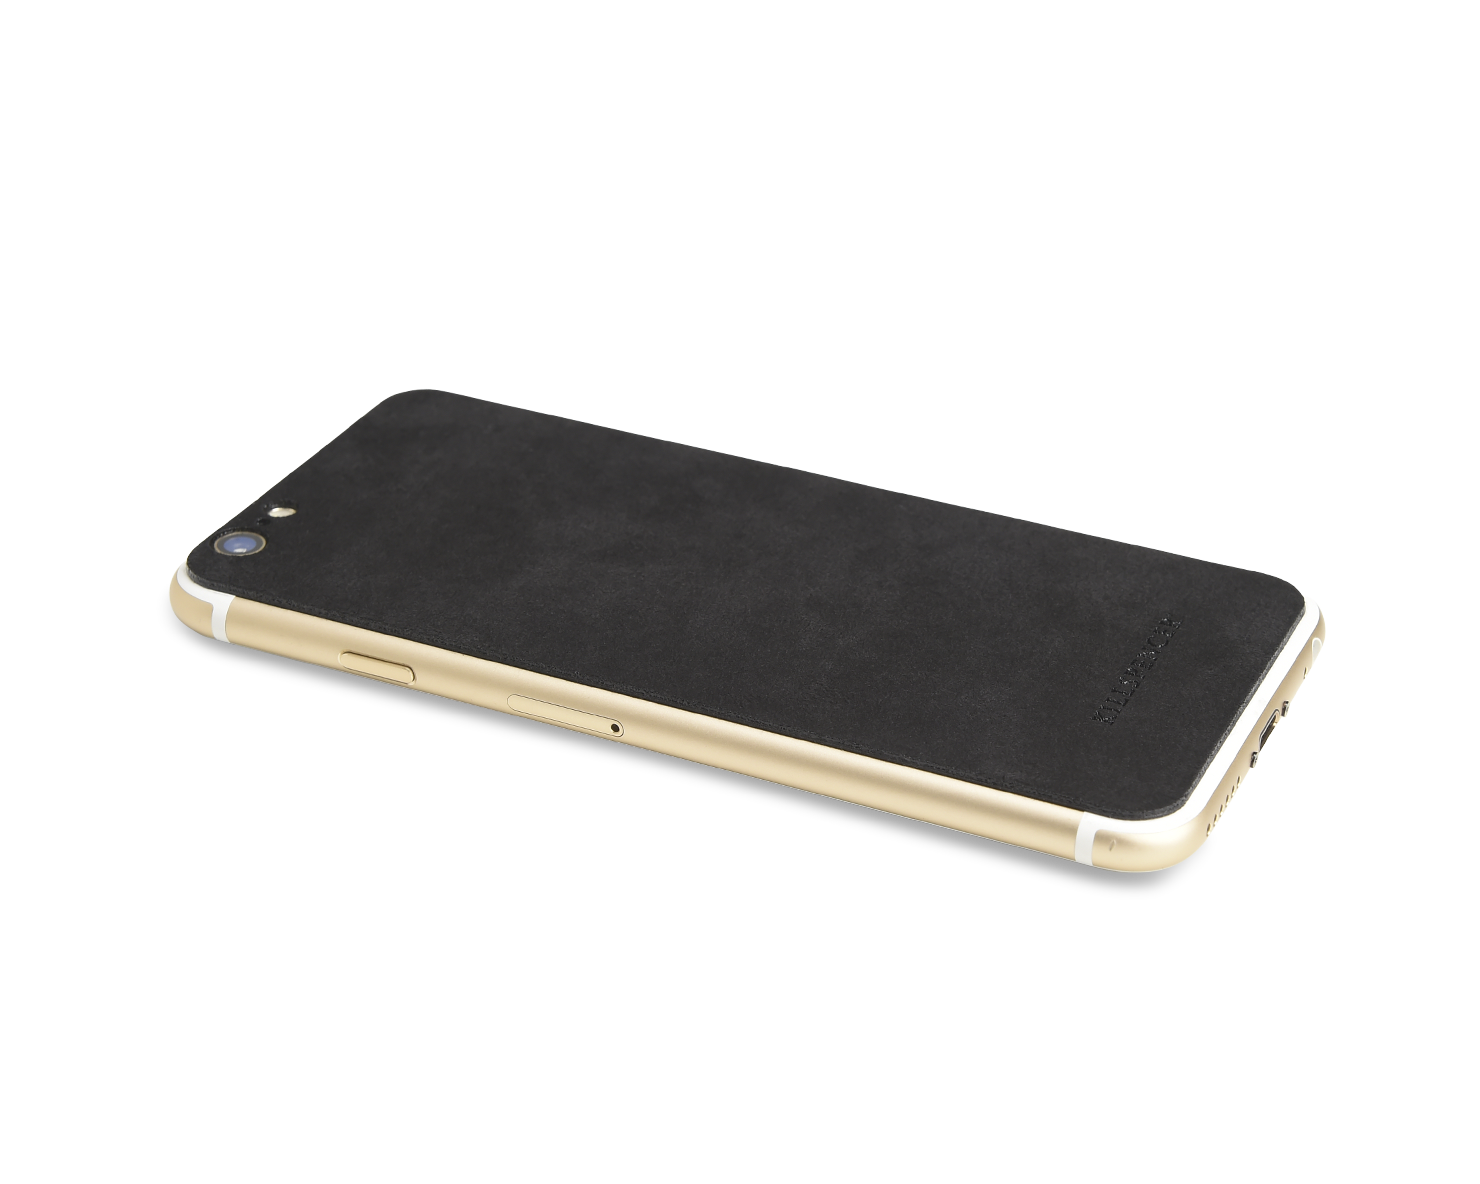 IPHONE 6 VEIL | KILLSPENCER® - Midnight Black Alcantara